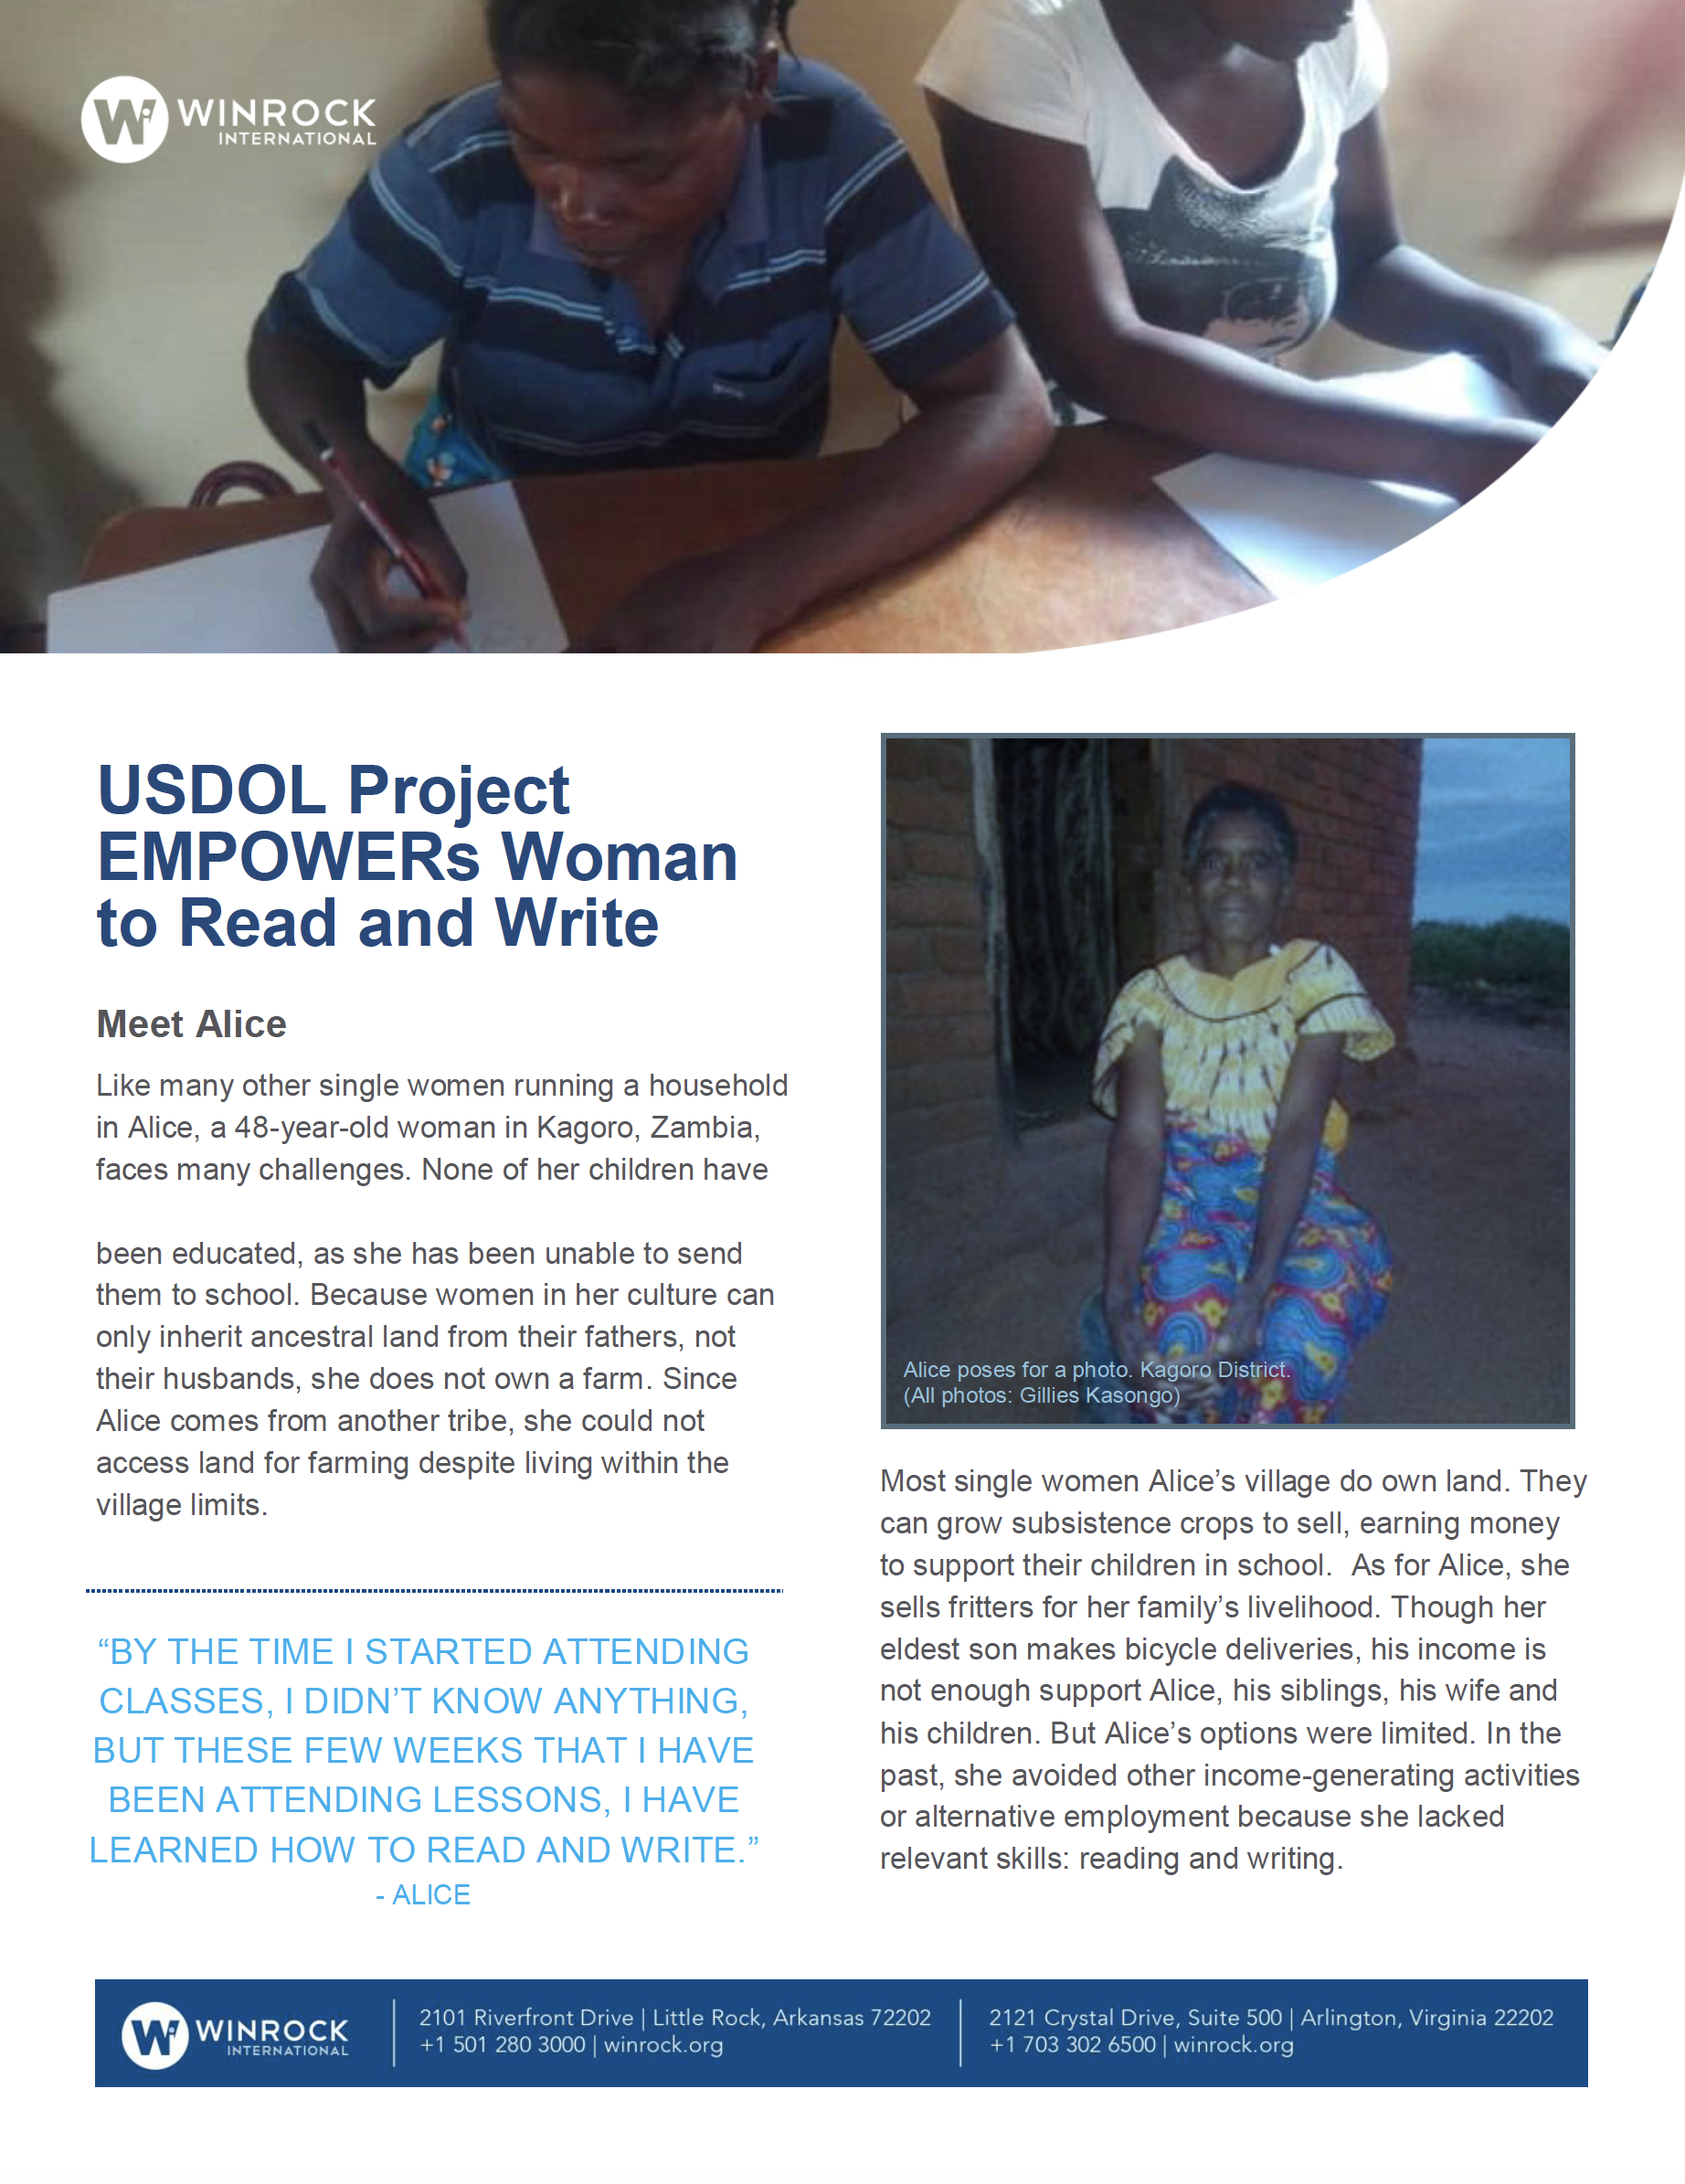 Winrock International » USDOL Project EMPOWERs Woman to Read and Write